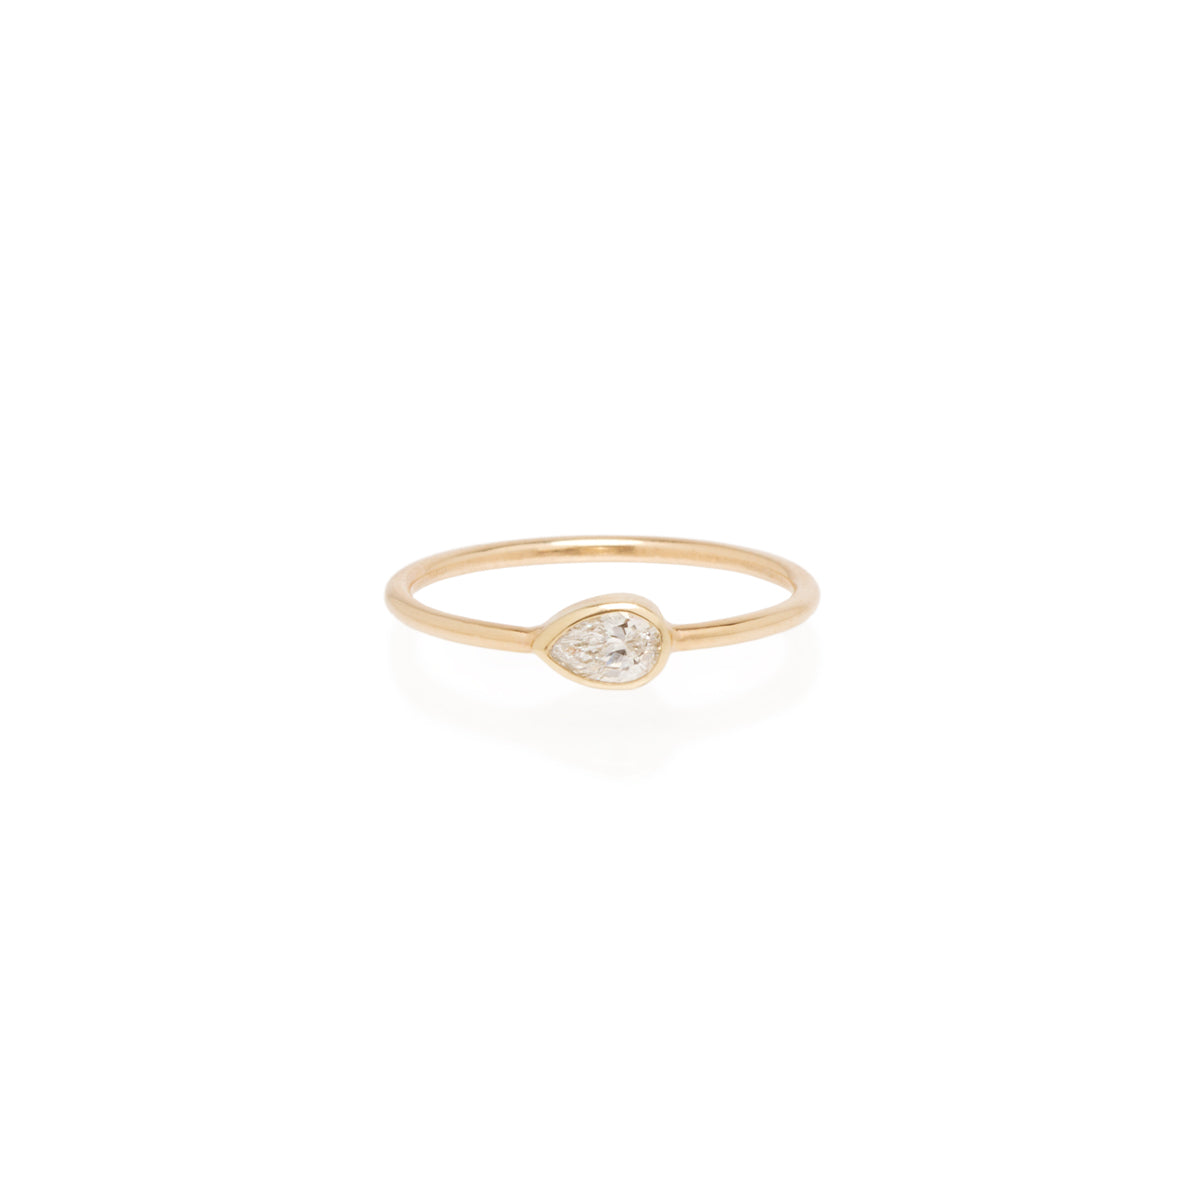 Zoë Chicco 14kt Yellow Gold Horizontal Pear Shaped Diamond Ring